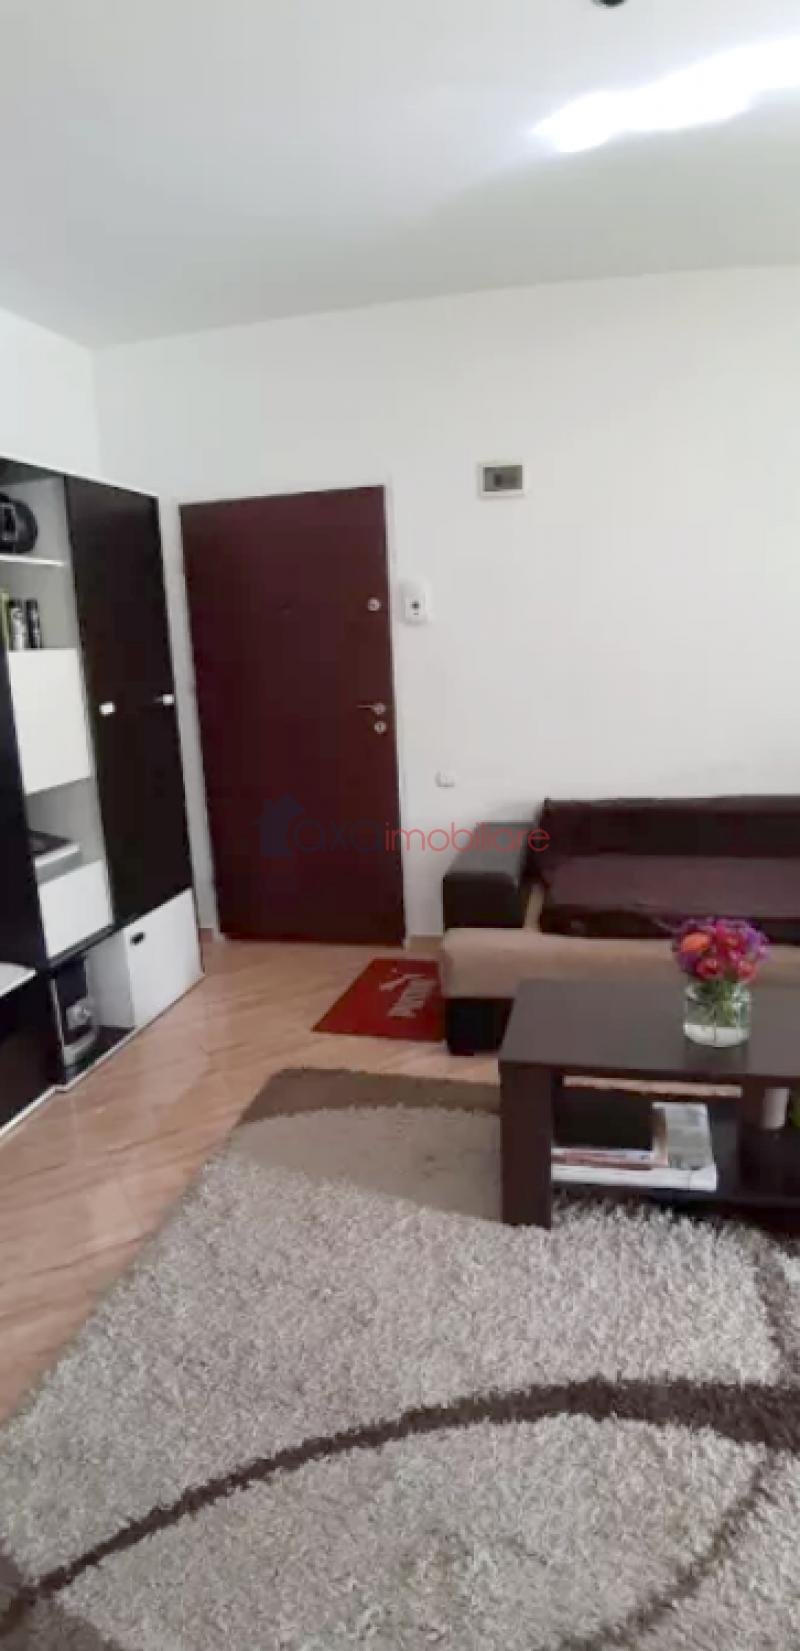 Apartment 2 rooms for sell in Cluj Napoca, ward Buna Ziua